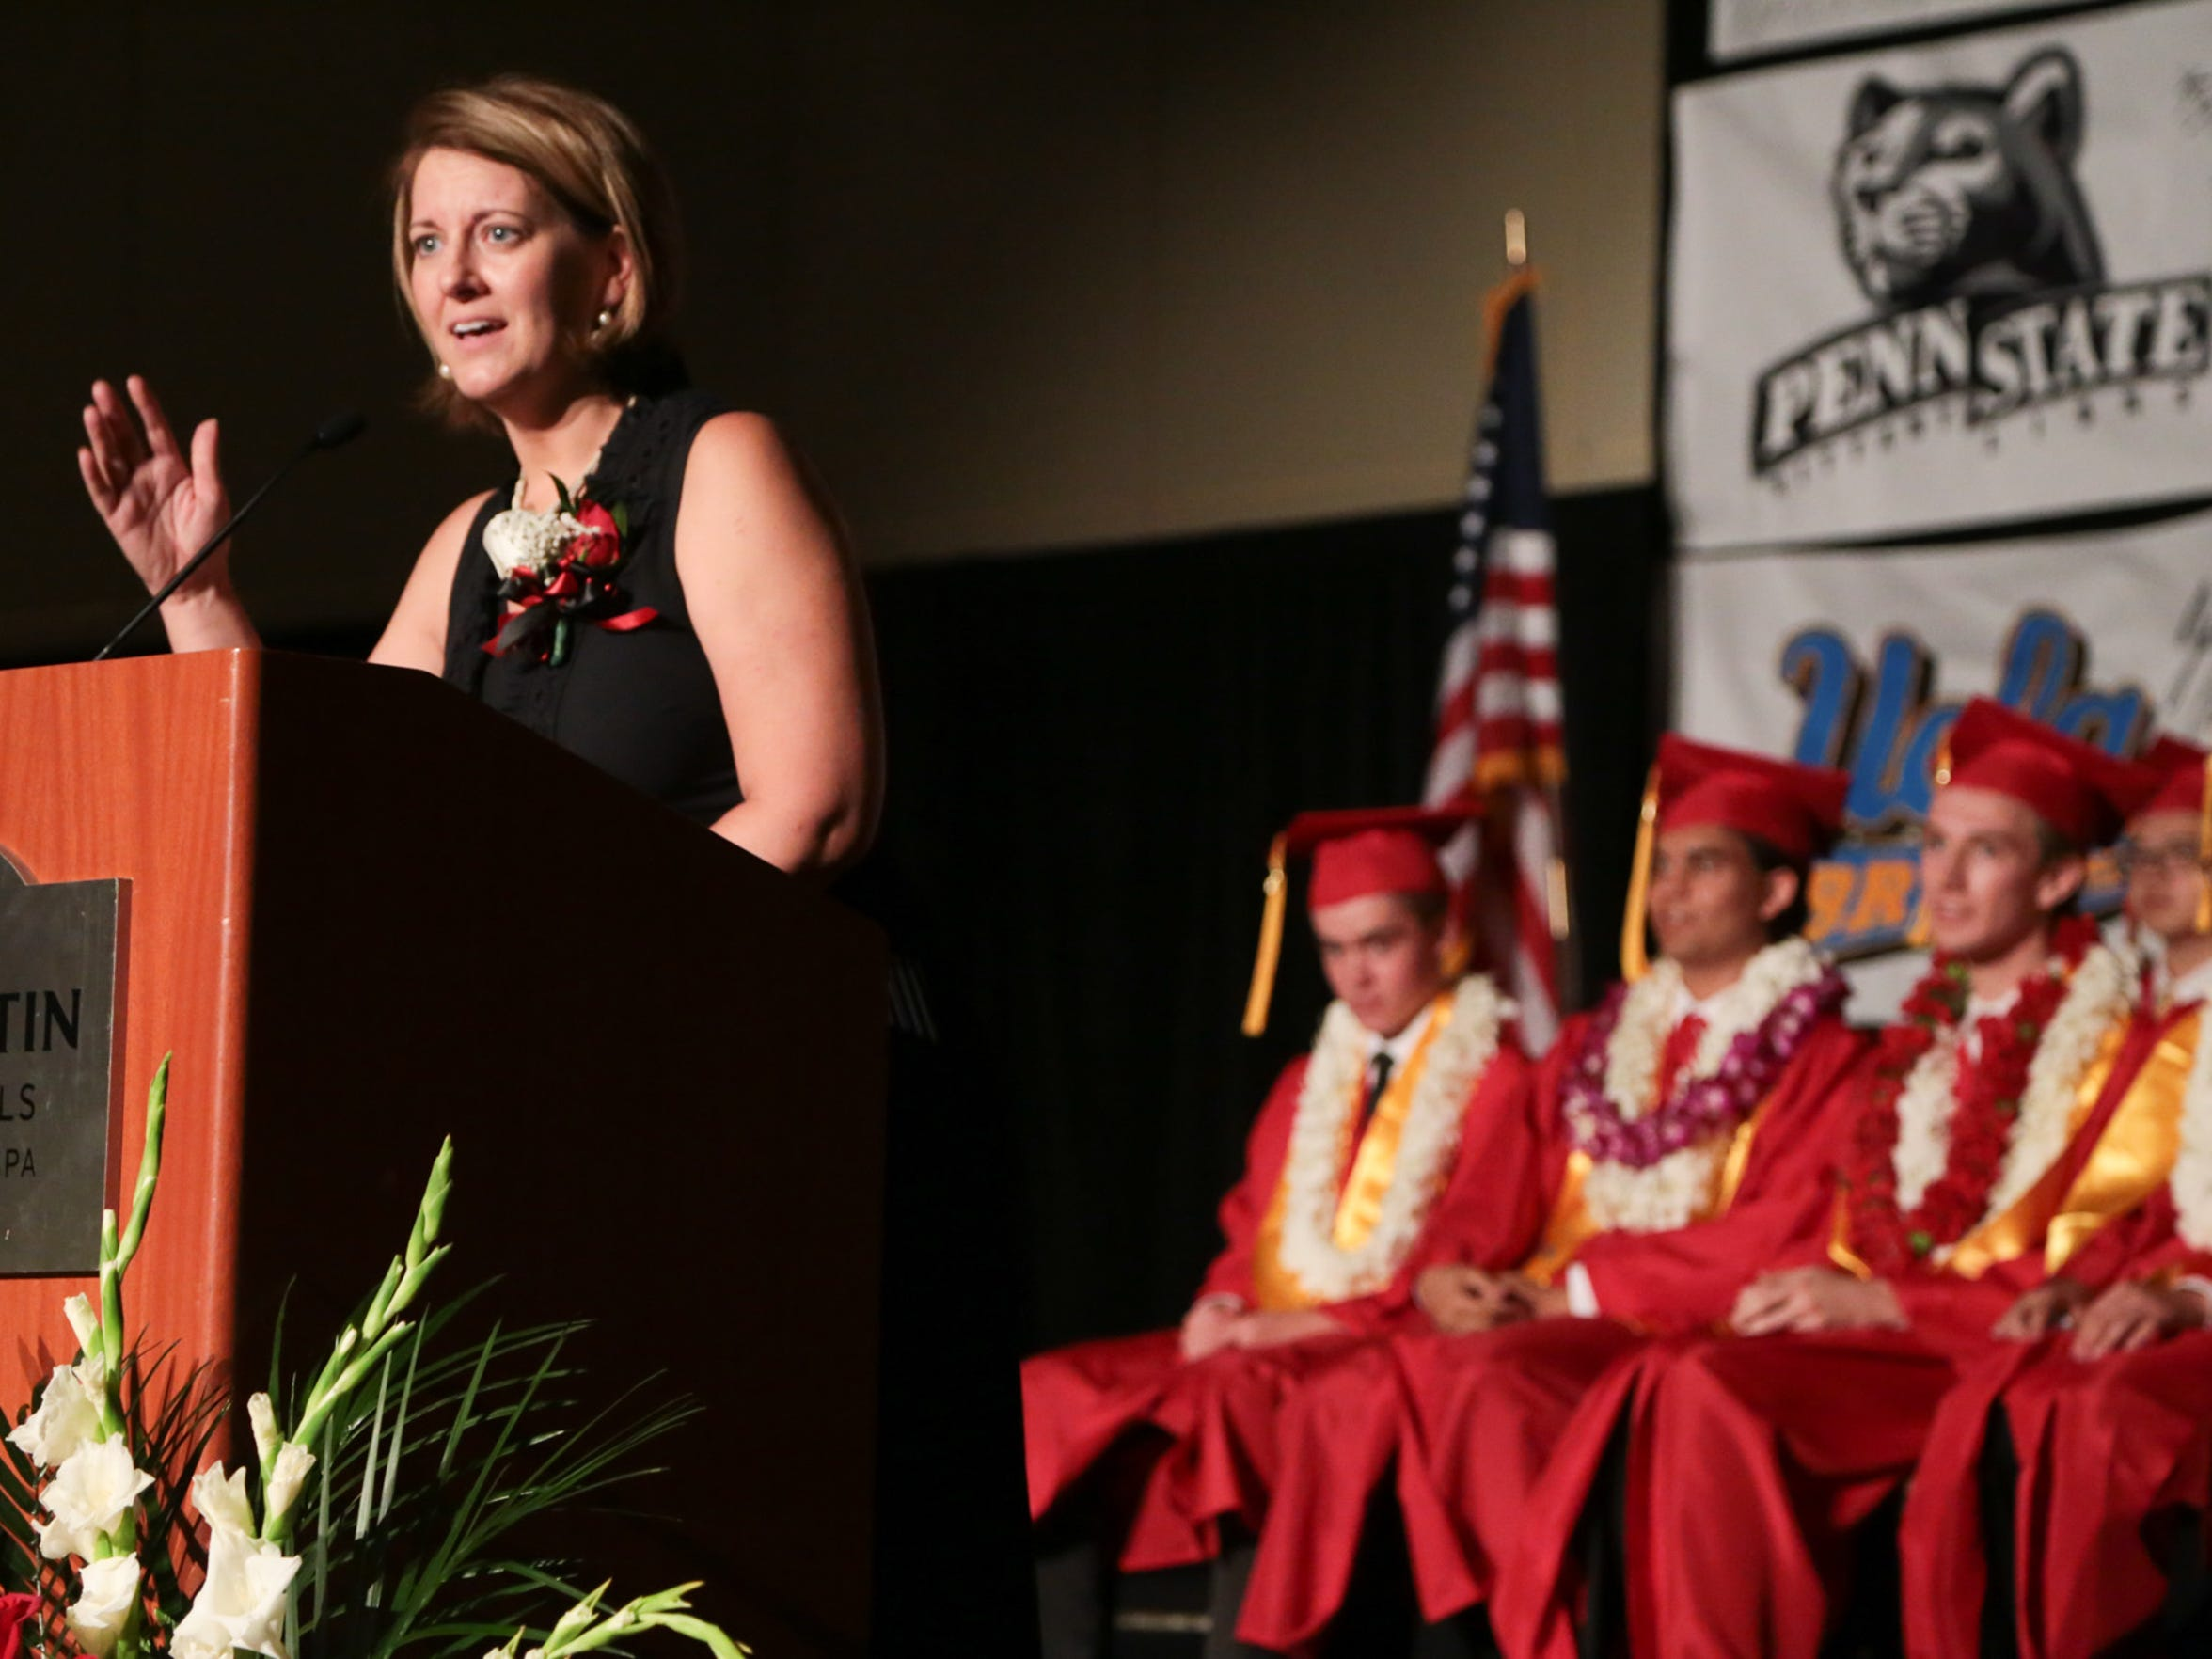 Head of School Susan Rice speaks at the Palm Valley School commencement ceremony, Tuesday, June 13, 2017.